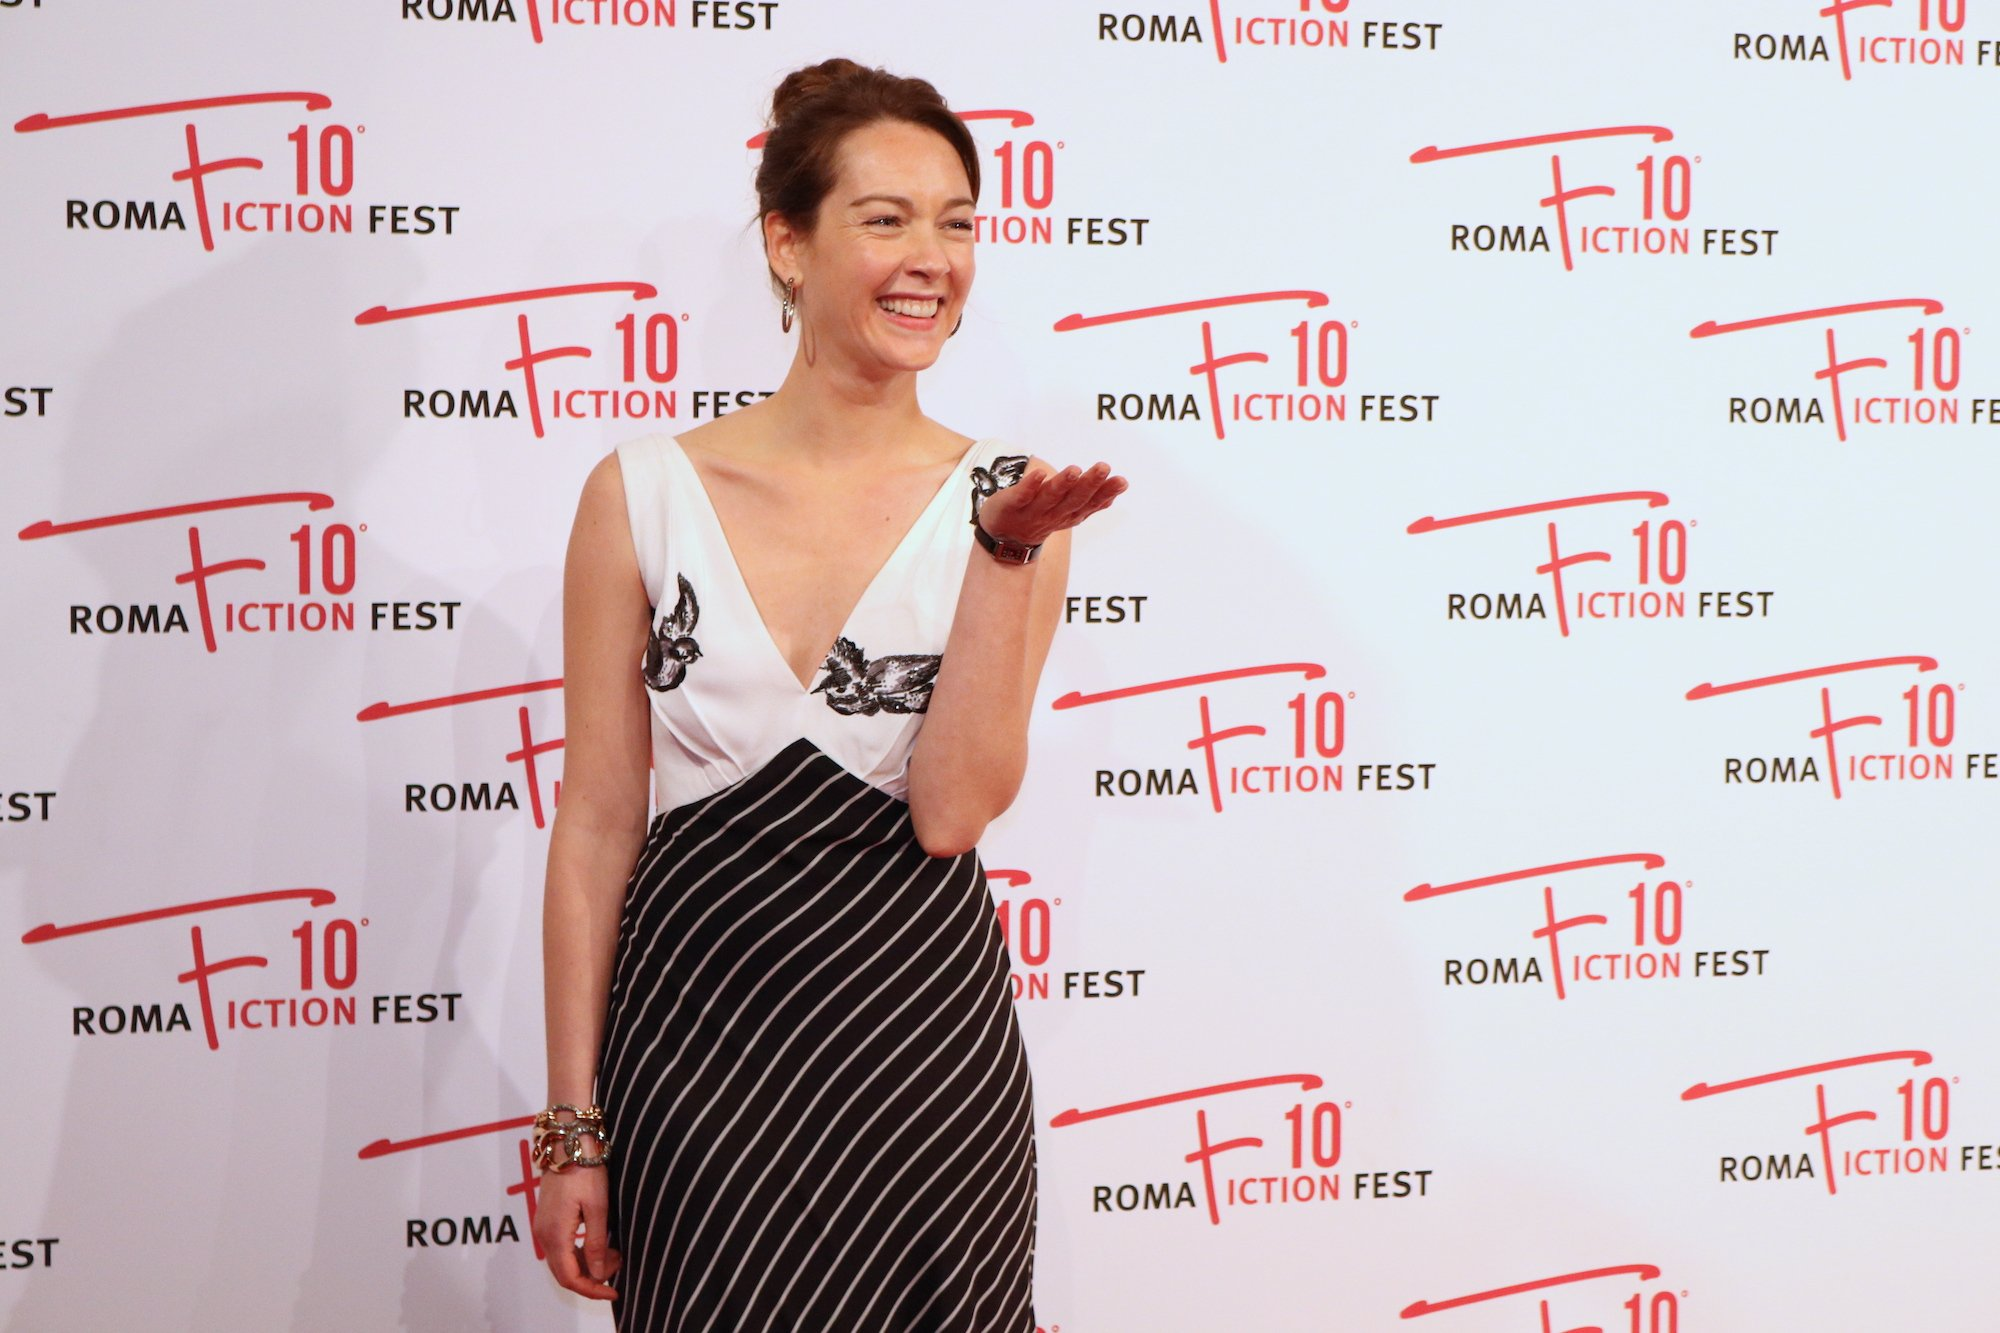 Roma Fiction Fest 2016: uno scatto di Cristiana Capotondi sul red carpet di Di padre in figlia